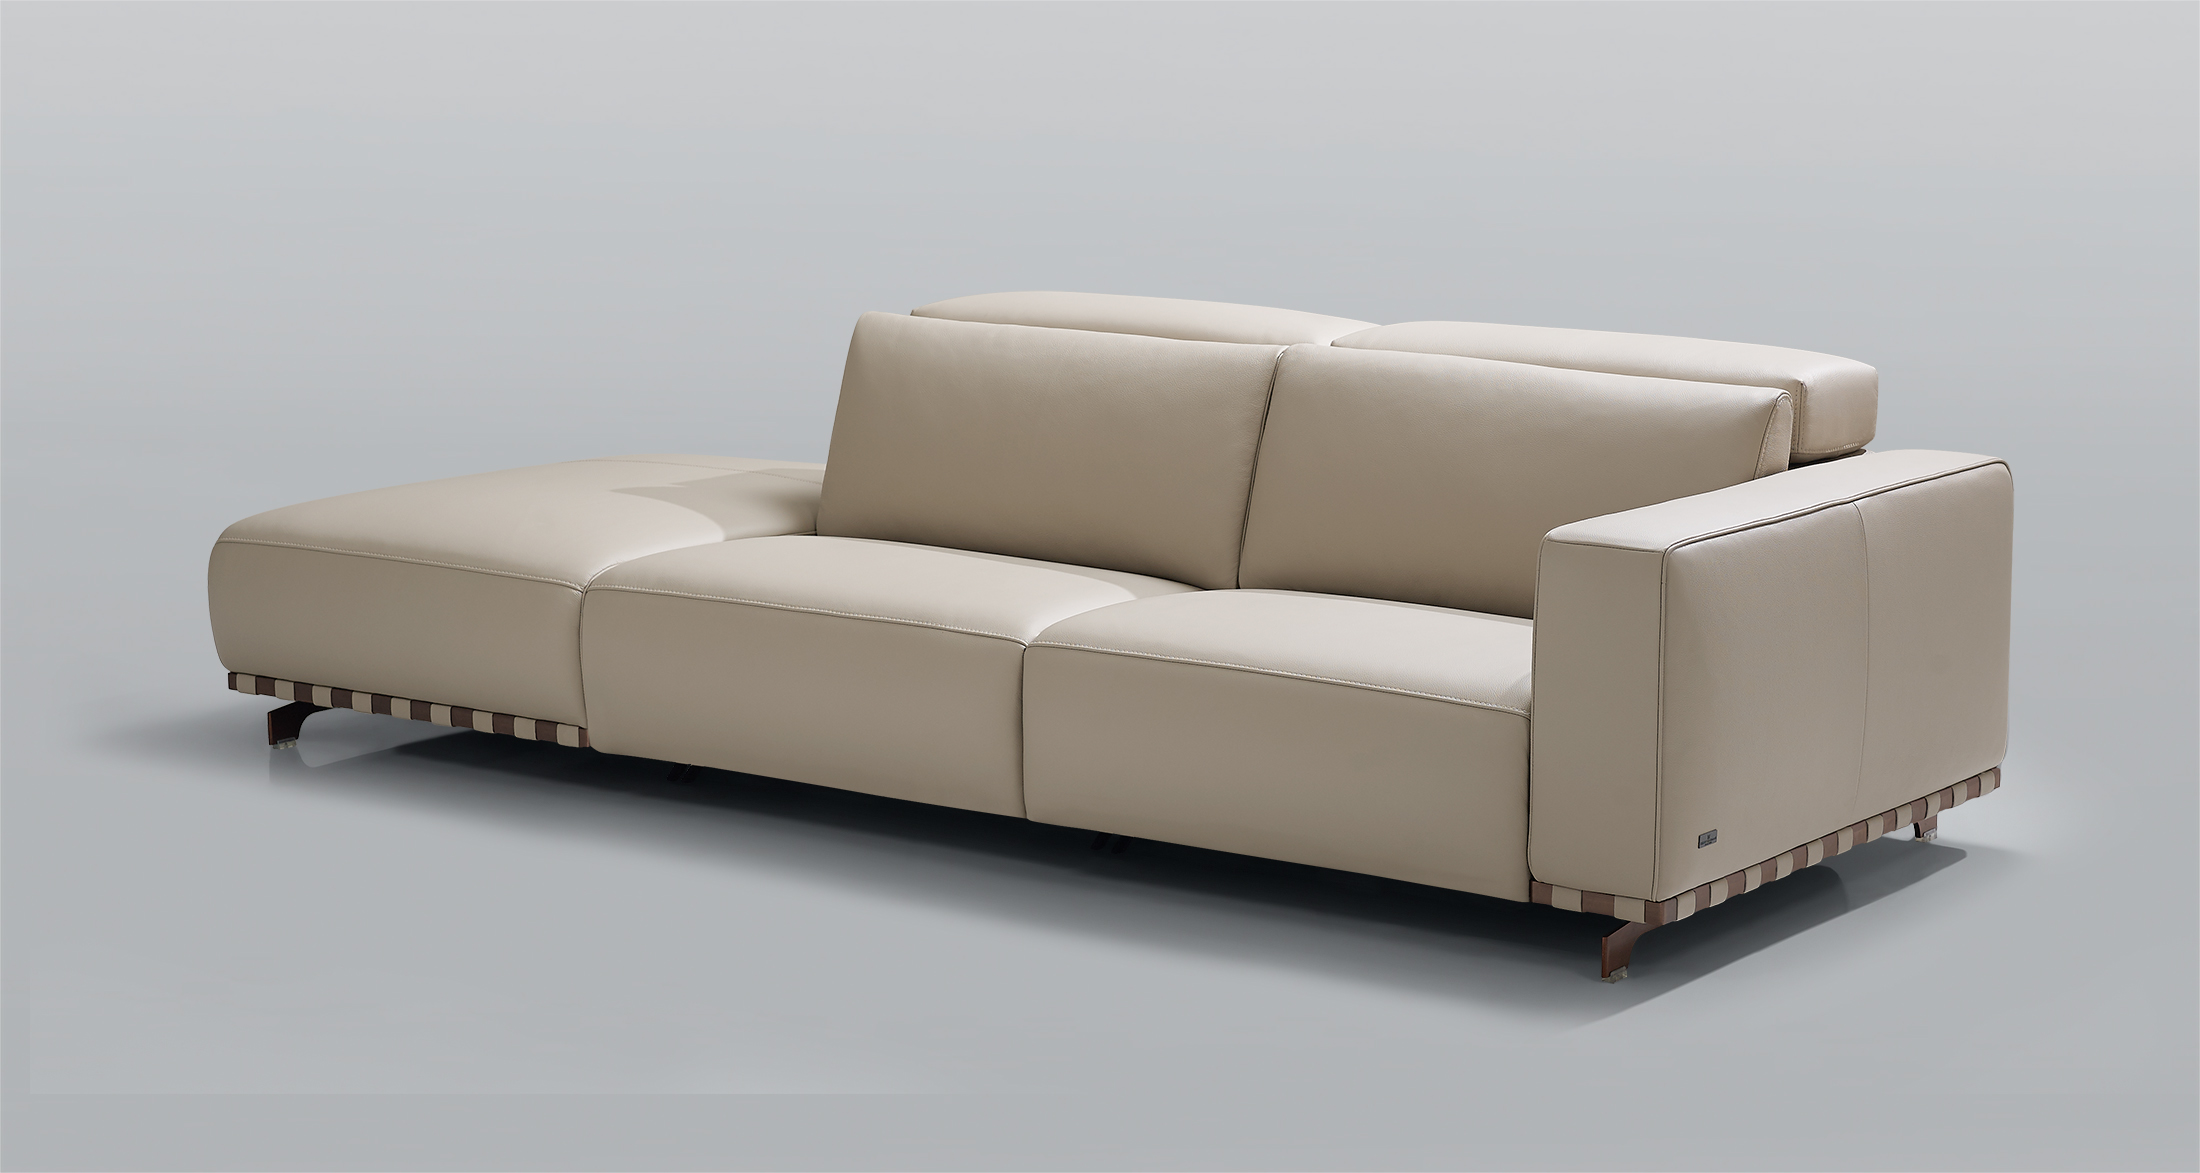 squarerooms kelvin giormani sofas couches leather luxury luxe luxurious new products furniture singapore italian buy concetto cream light